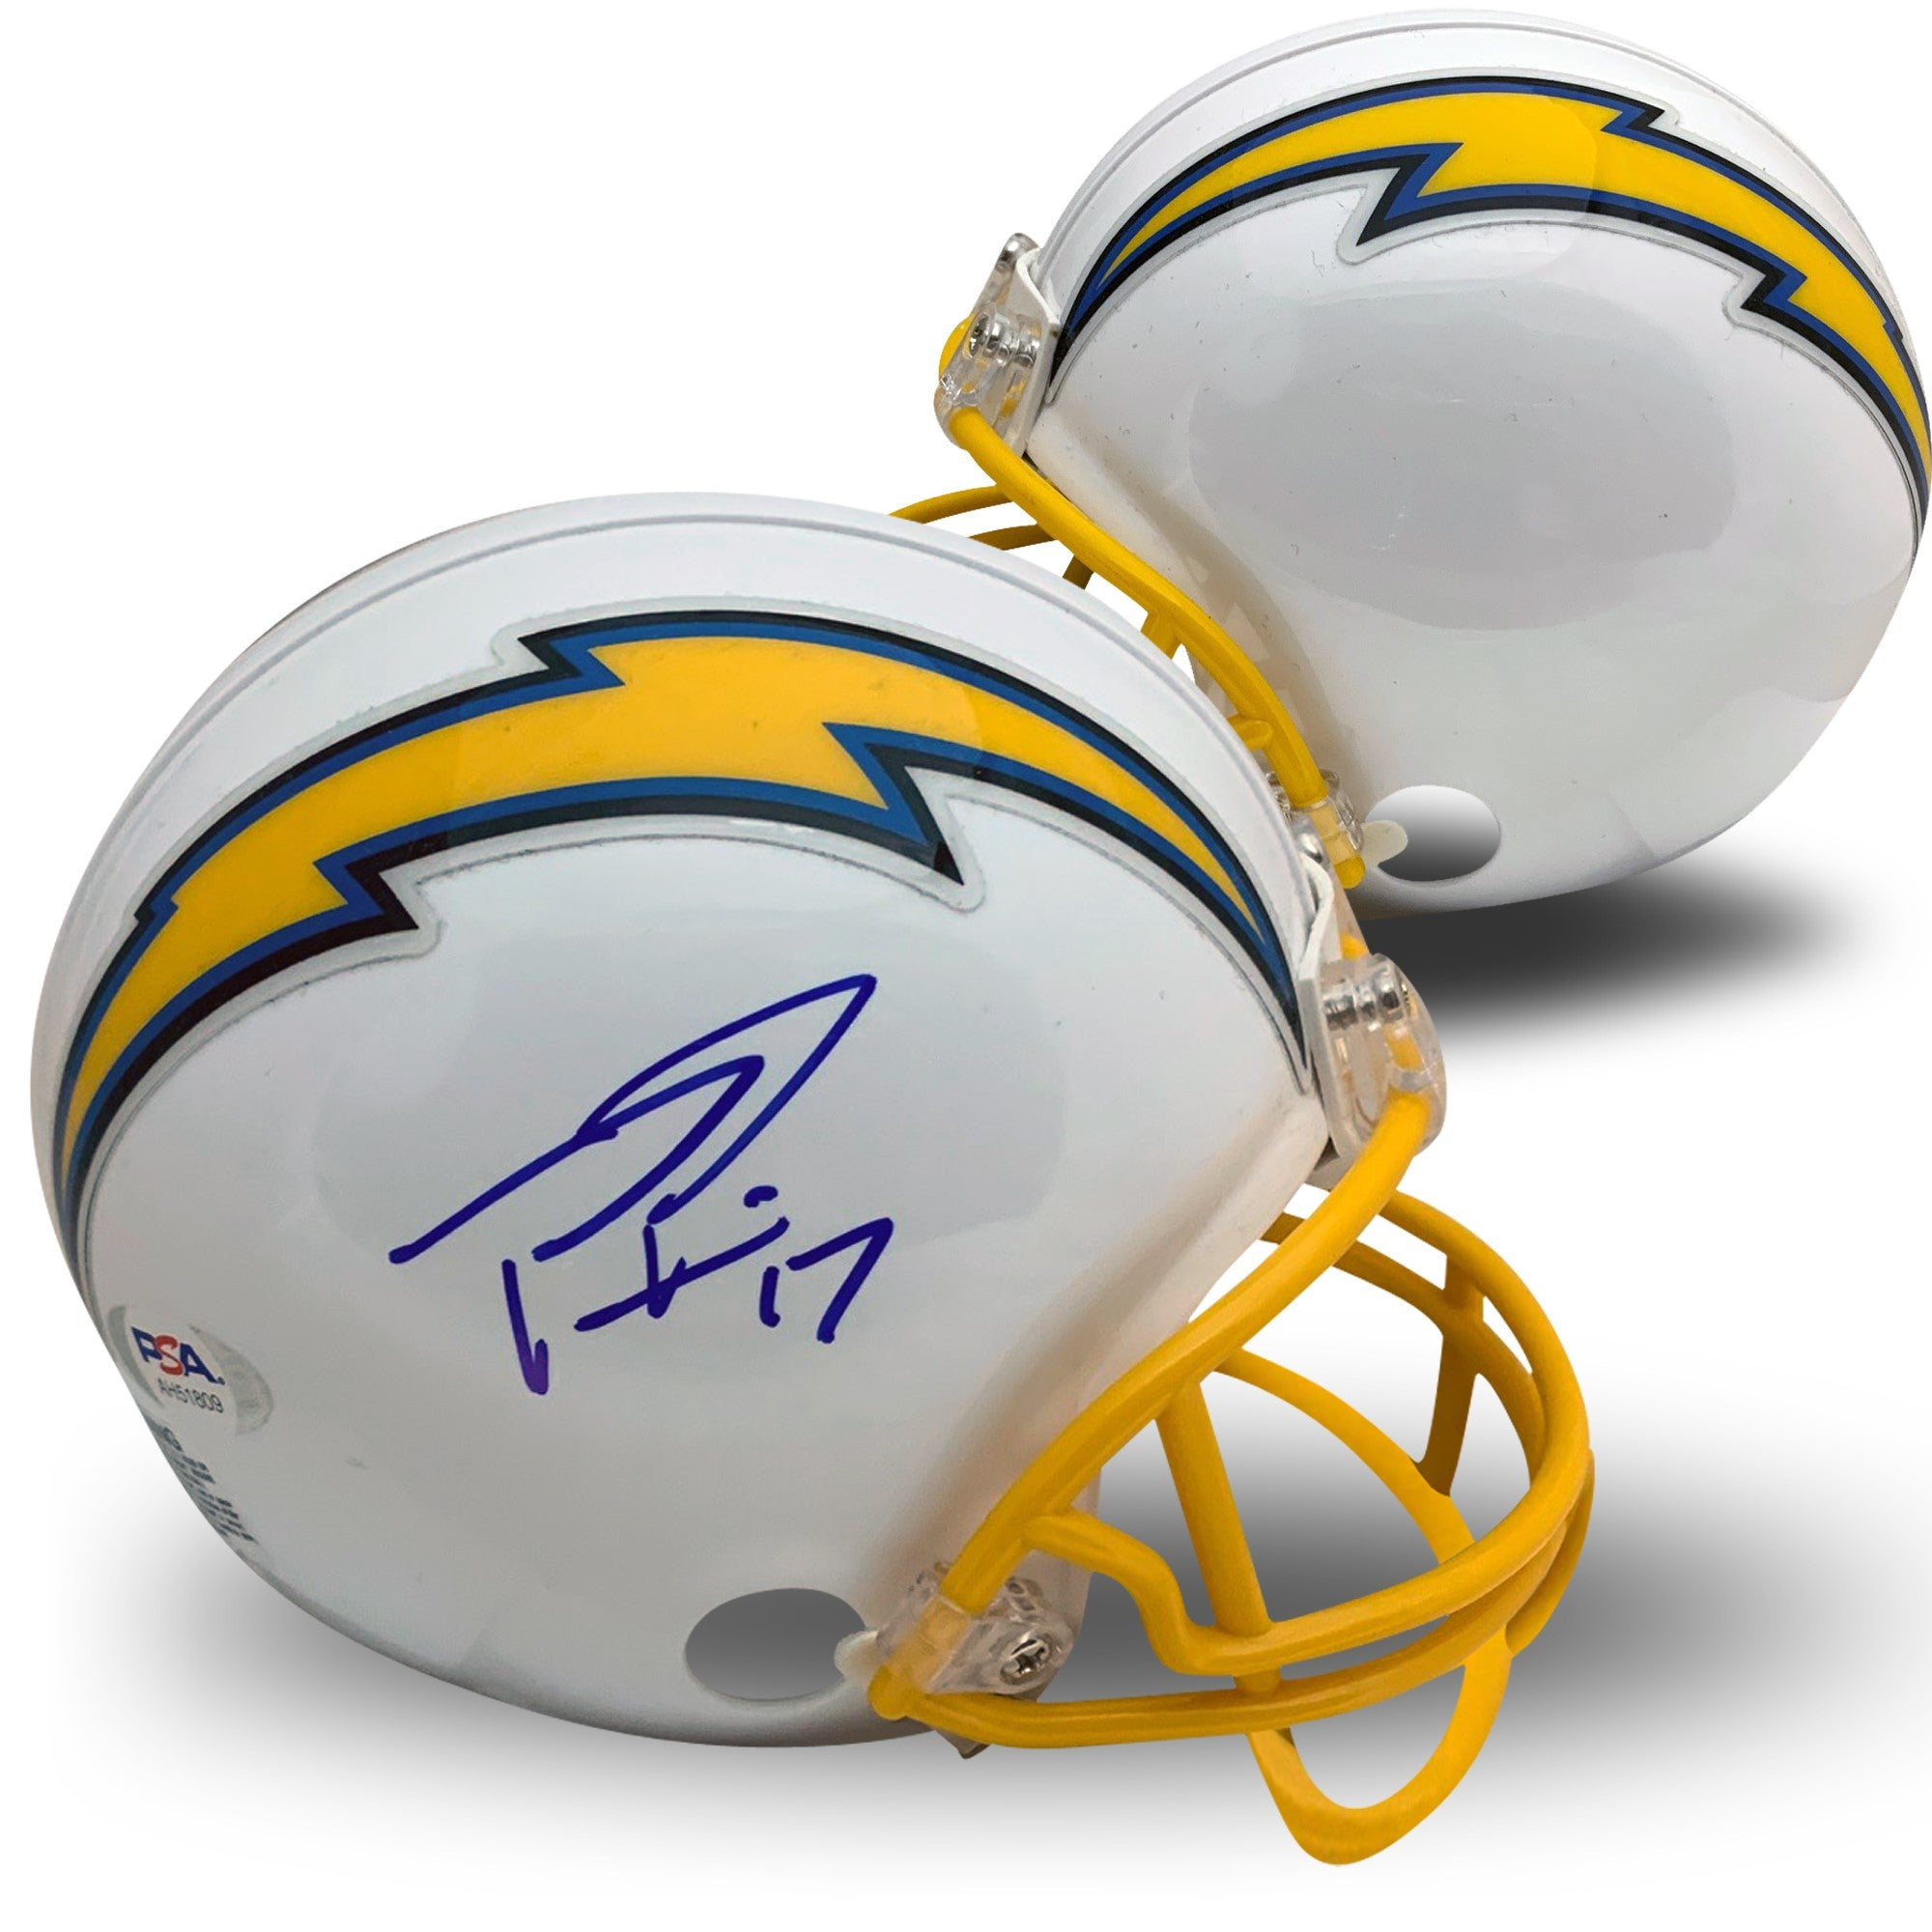 Philip Rivers Autographed Los Angeles  Chargers Signed NFL Football Mini Helmet PSA DNA COA